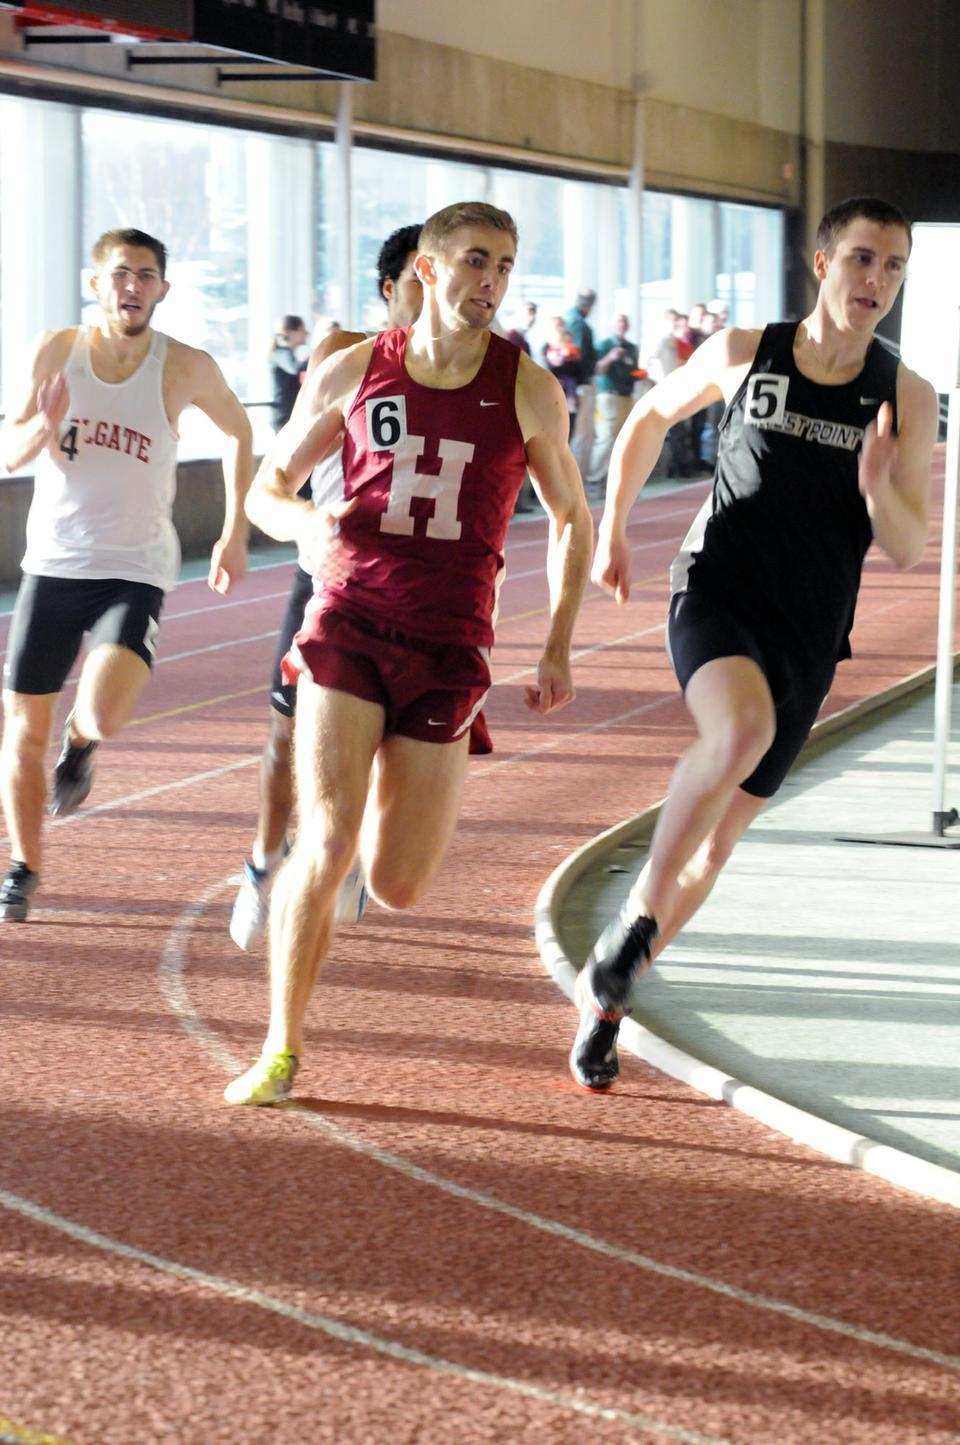 Track & field co-captain Brian Hill, shown here in earlier action, anchored the Crimson's 4x800 relay team Saturday at the Penn Relays. Hill turned in a personal best to lead Harvard's entry—composed of juniors Darcy Wilson and Brian Paison and sophomore Weishen Mead—to a new school record.